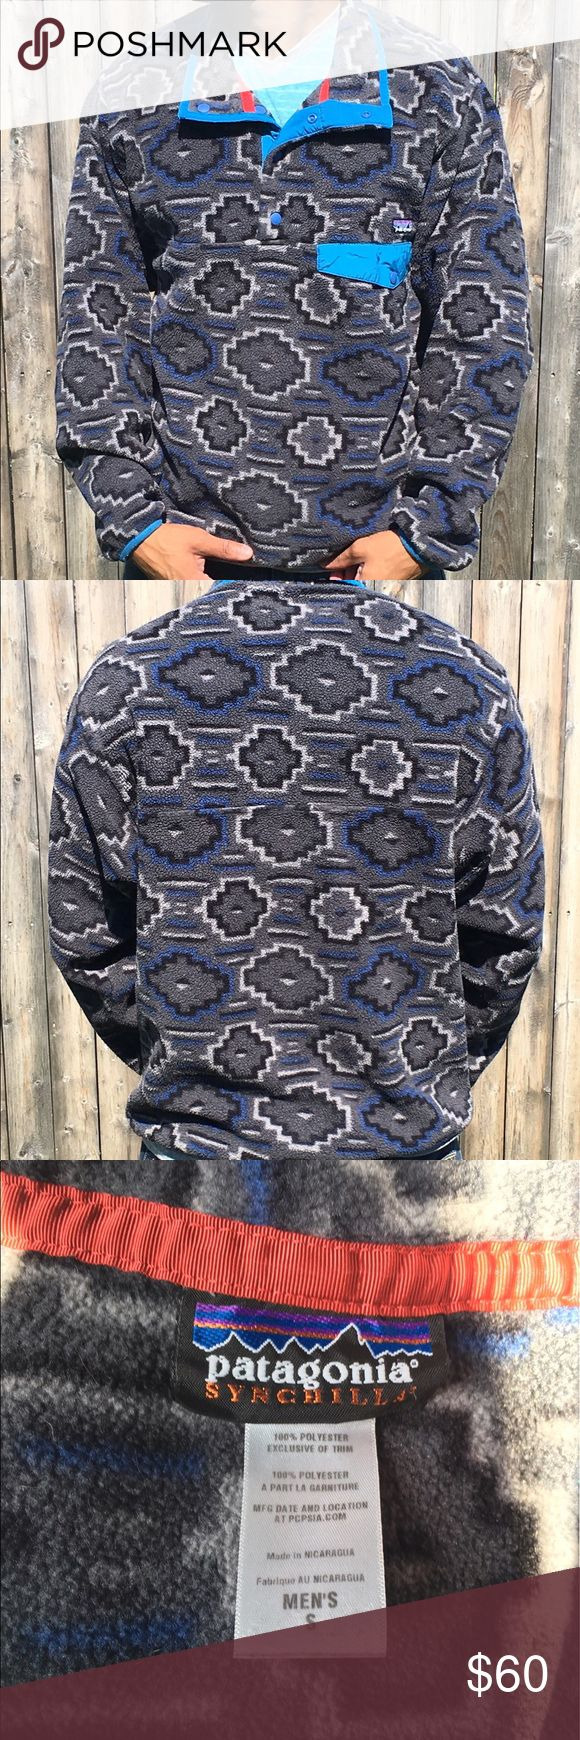 Patagonia Synchilla Aztec Tribal fleece Pullover Gray / Blue Aztec pattern. Snap close chest pocket with small Patagonia patch over it. Very Good condition. It's a men's but it a unisex pattern Patagonia Jackets & Coats Lightweight & Shirt Jackets